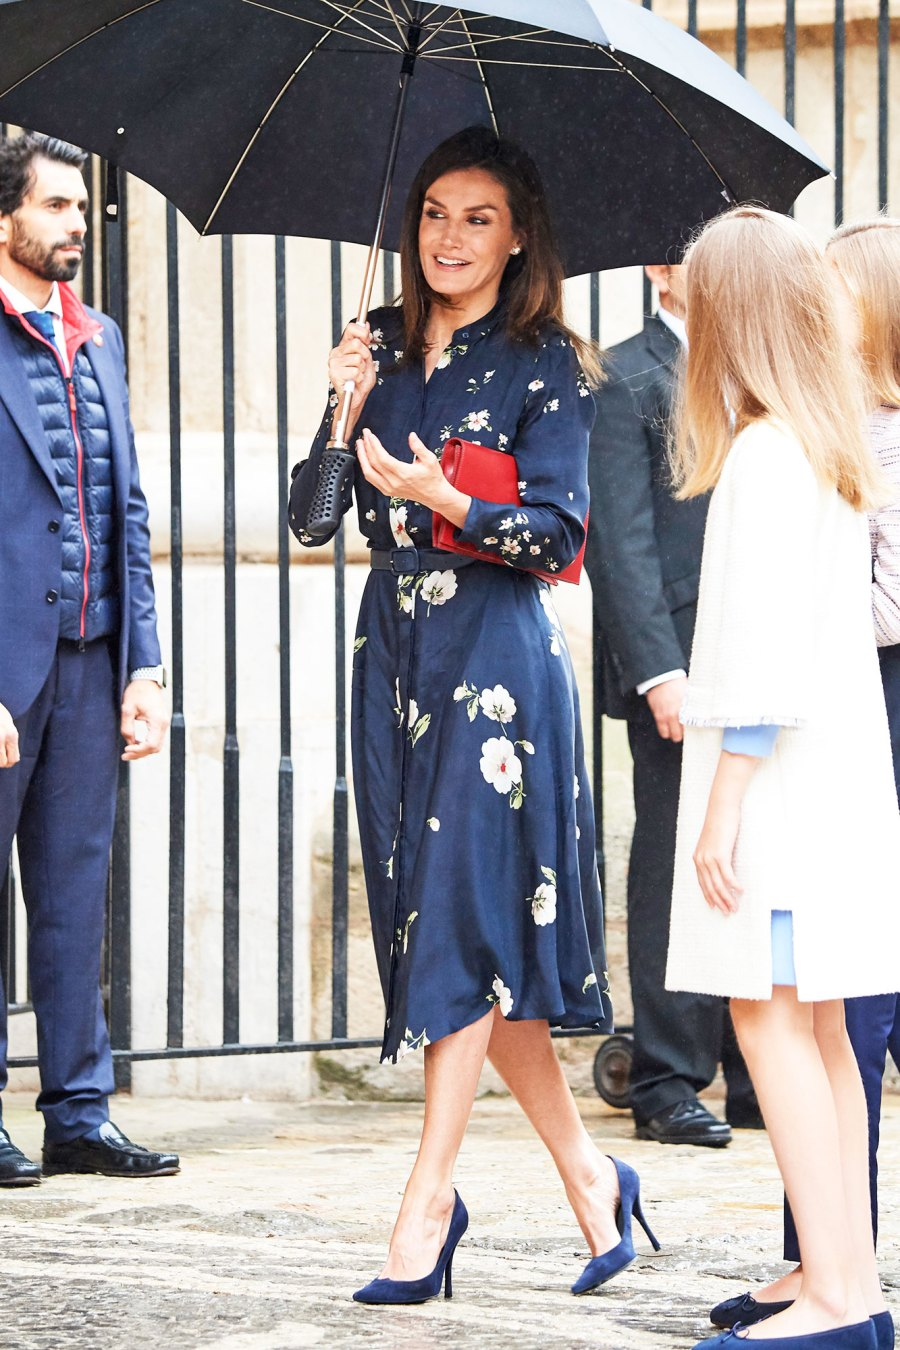 Queen Letizia Stuns in the Chicest Holiday-Appropriate Floral Dress